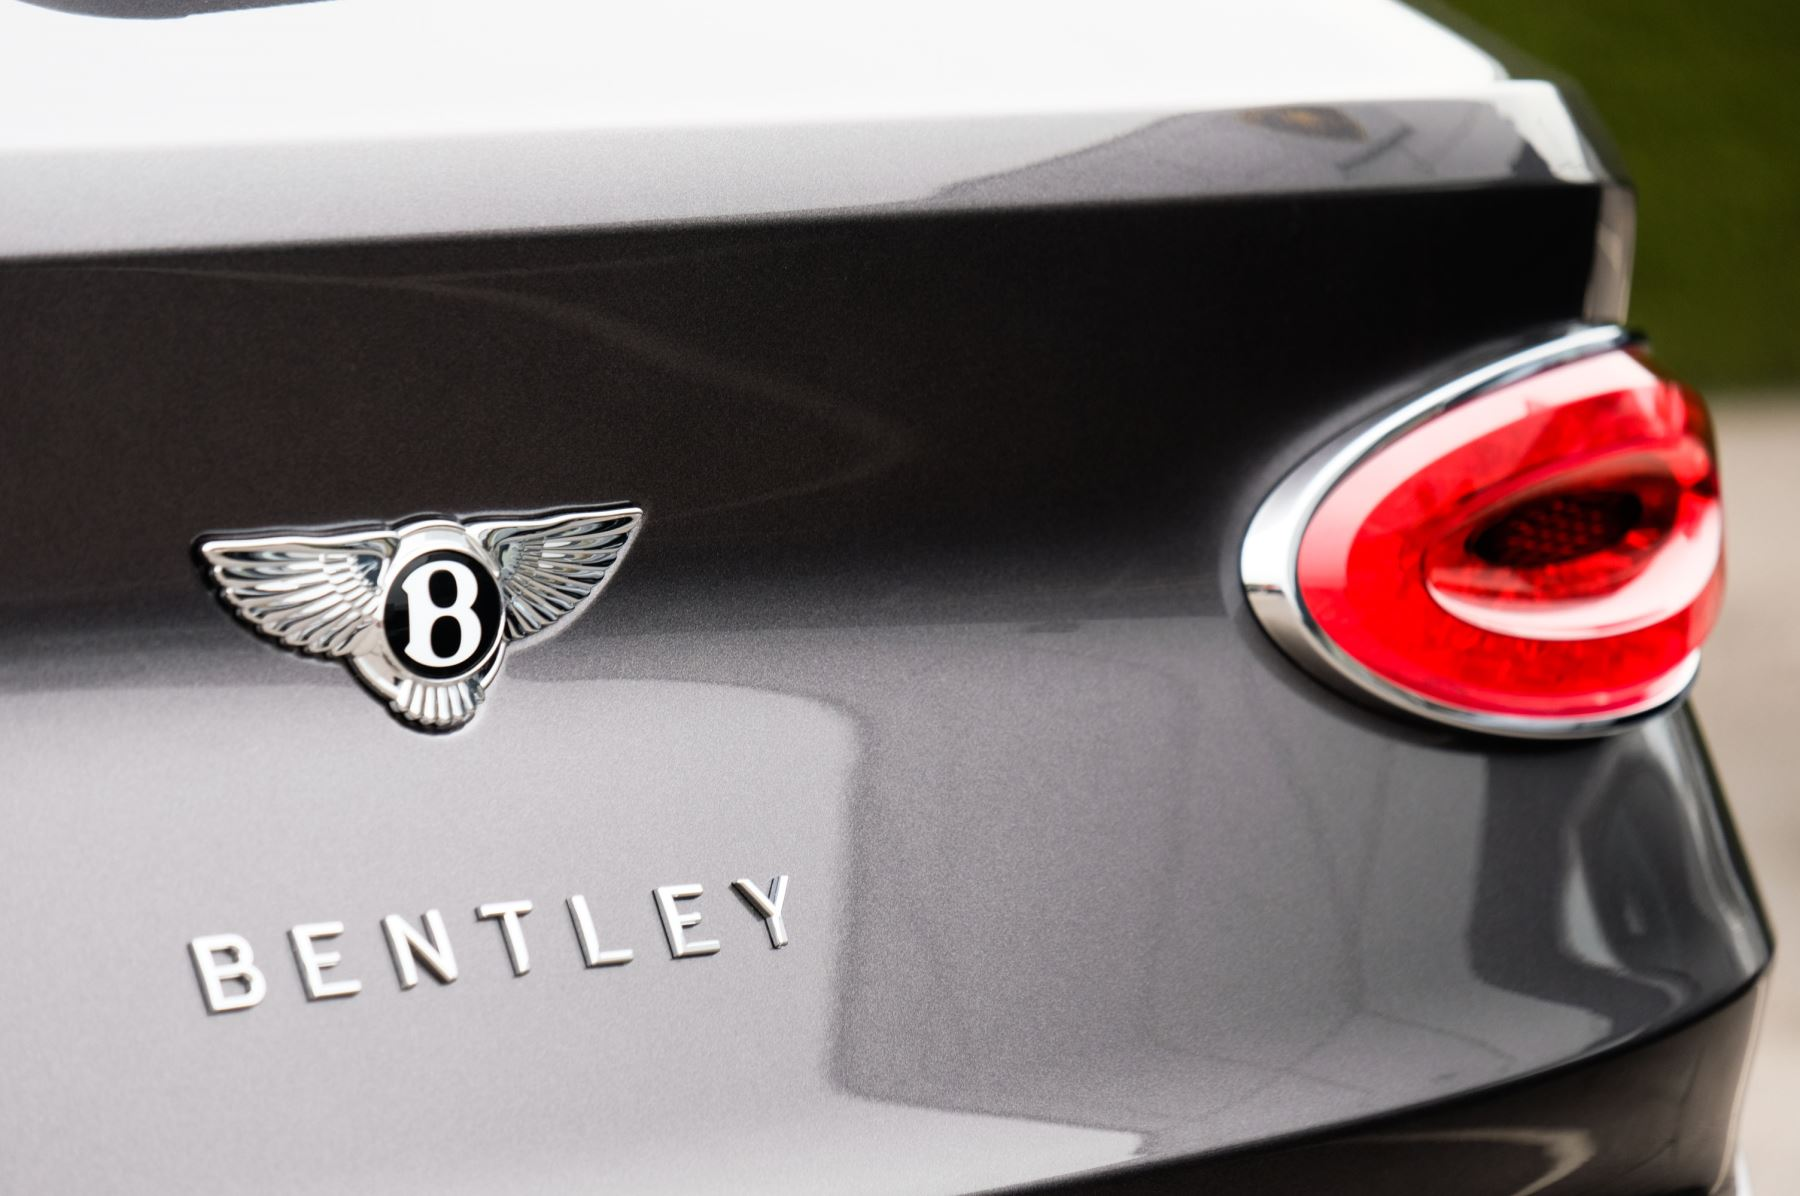 Bentley Bentayga 4.0 V8 5dr [4 Seat] - First Edition - All Terrain Specification image 10